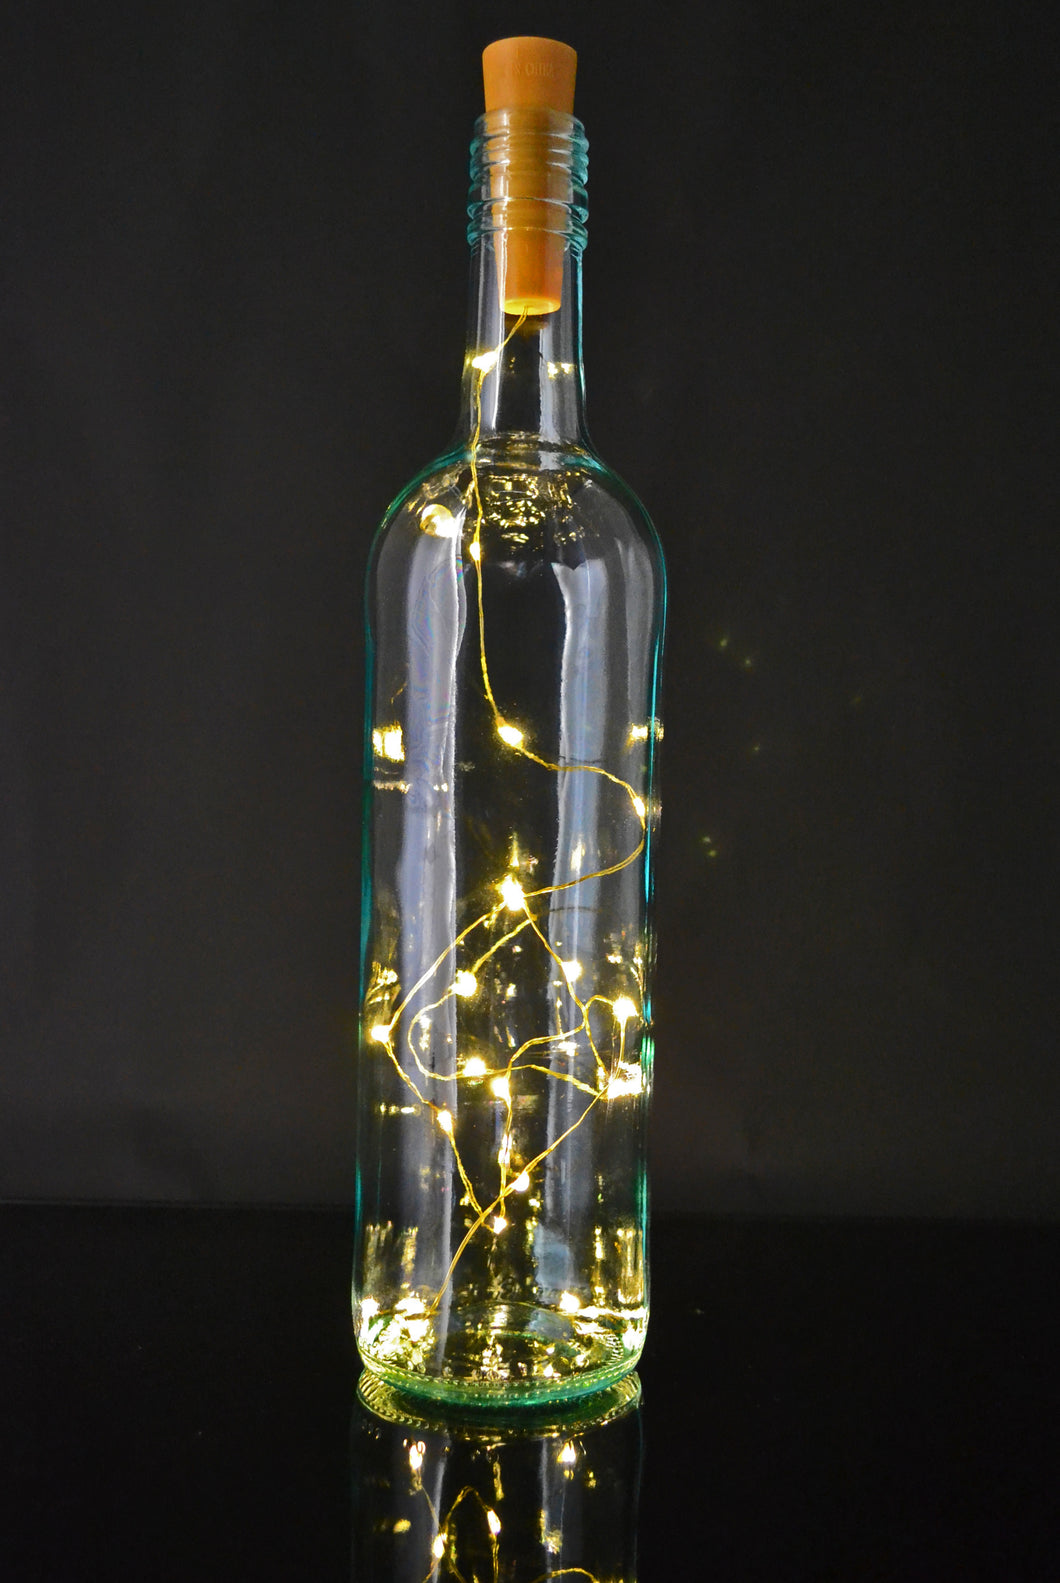 Battery operated cork wine bottle fairy lights, button battery powered warm white